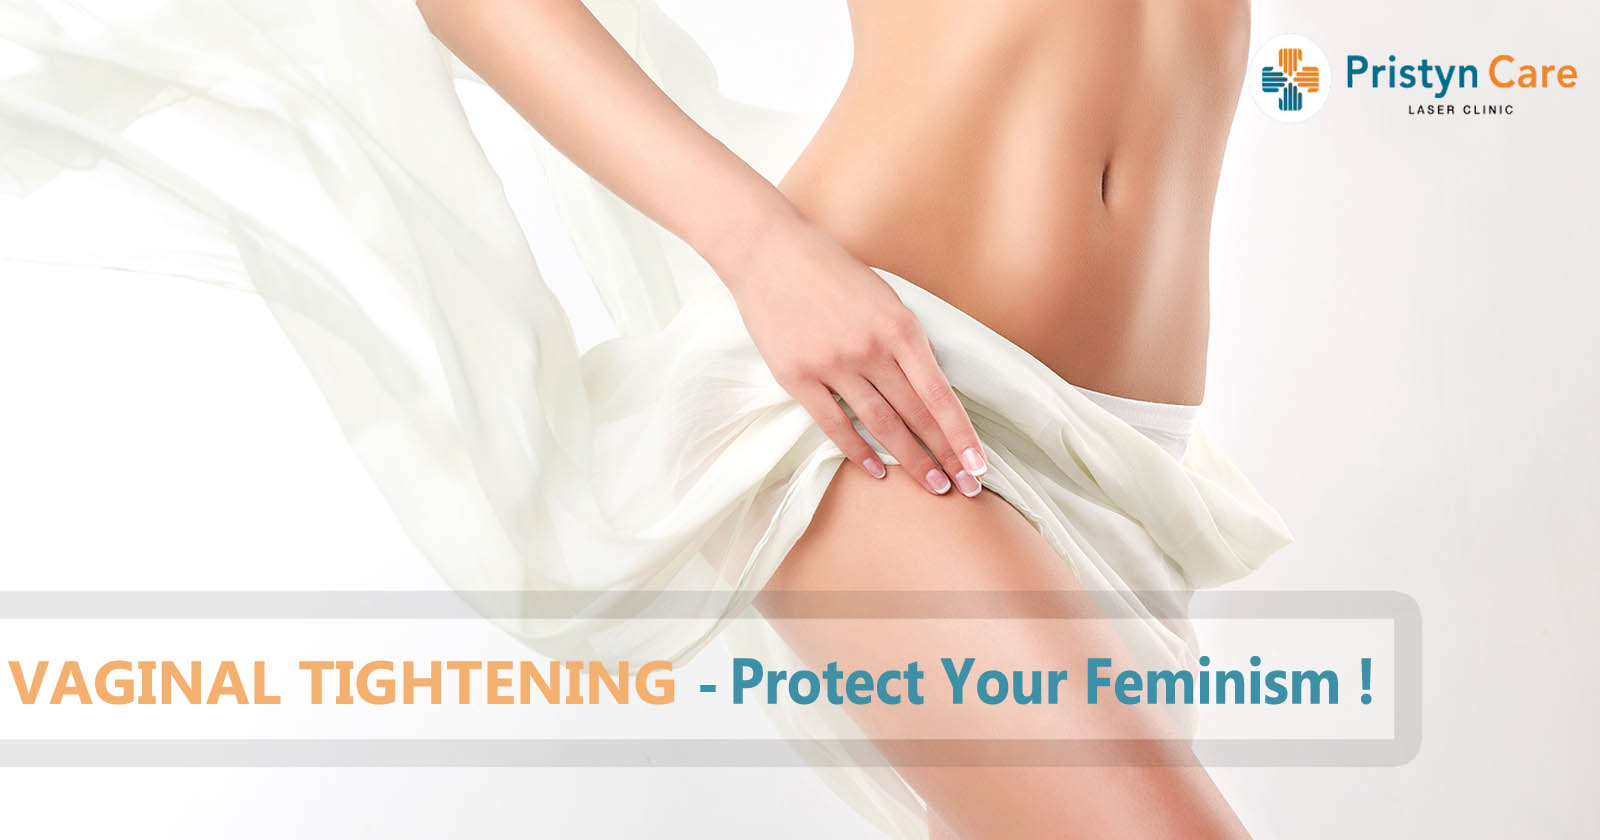 VAGINAL TIGHTENING- Protect Your Feminism!